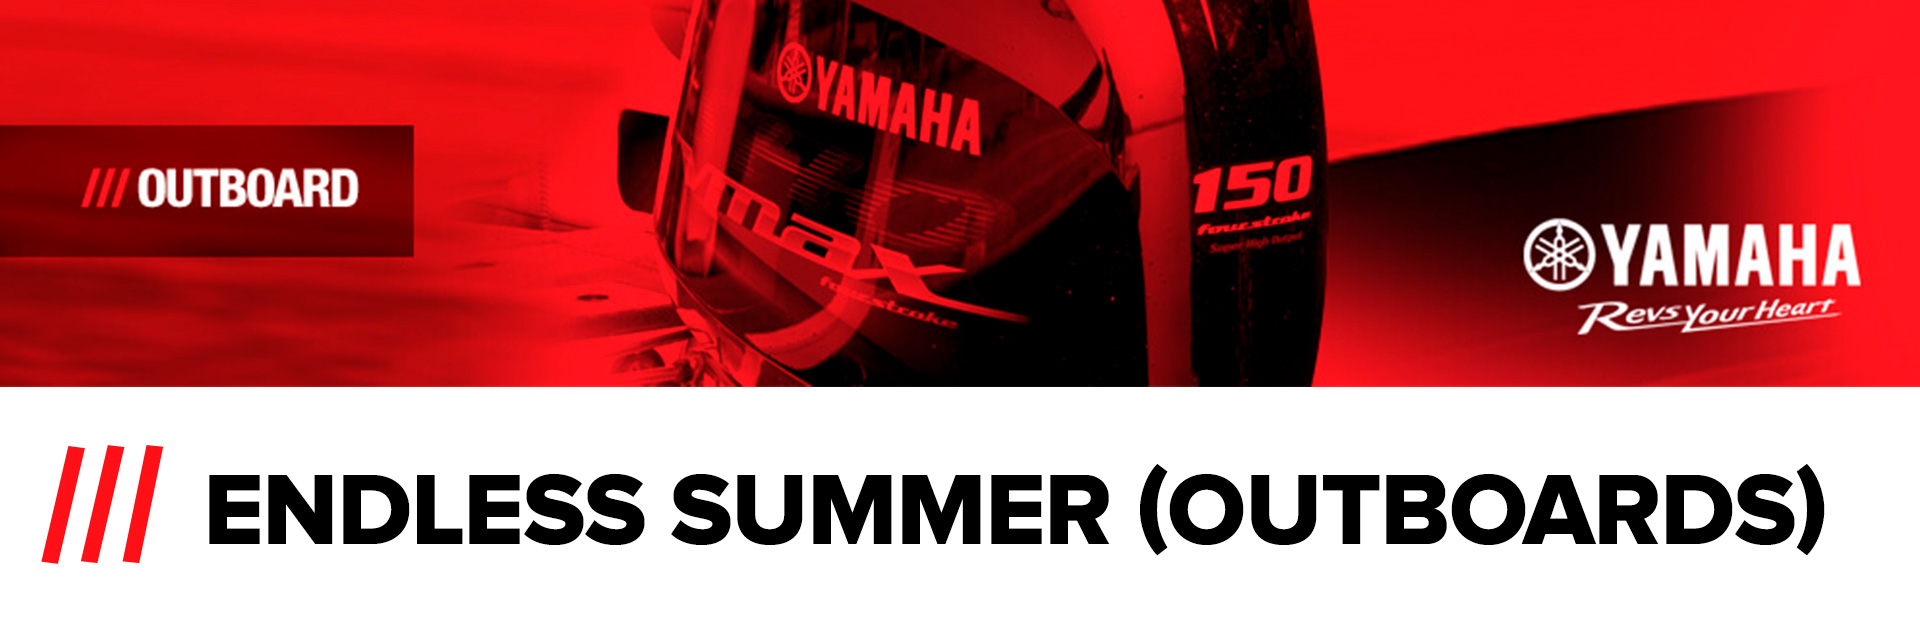 Yamaha: ENDLESS SUMMER (OUTBOARD)